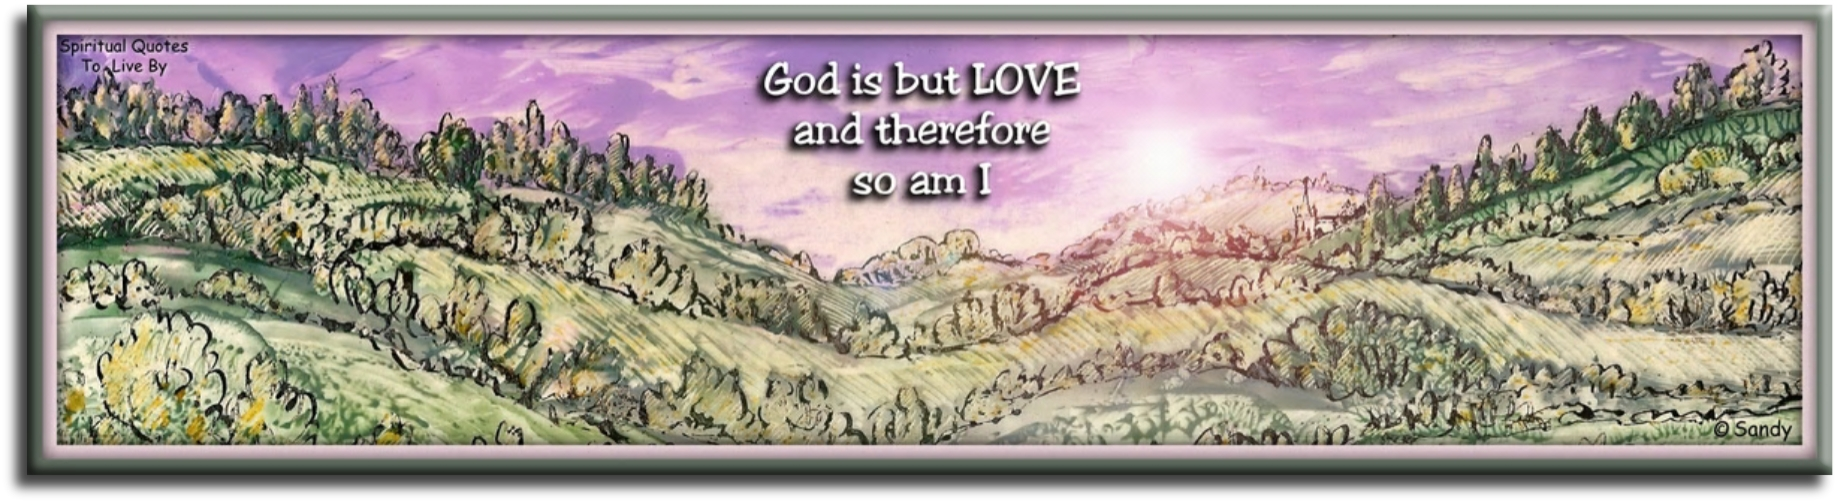 A Course In Miracles quote: God is but love, and therefore so am I.  - encaustic artwork Sandra Reeves - Spiritual Quotes To Live By